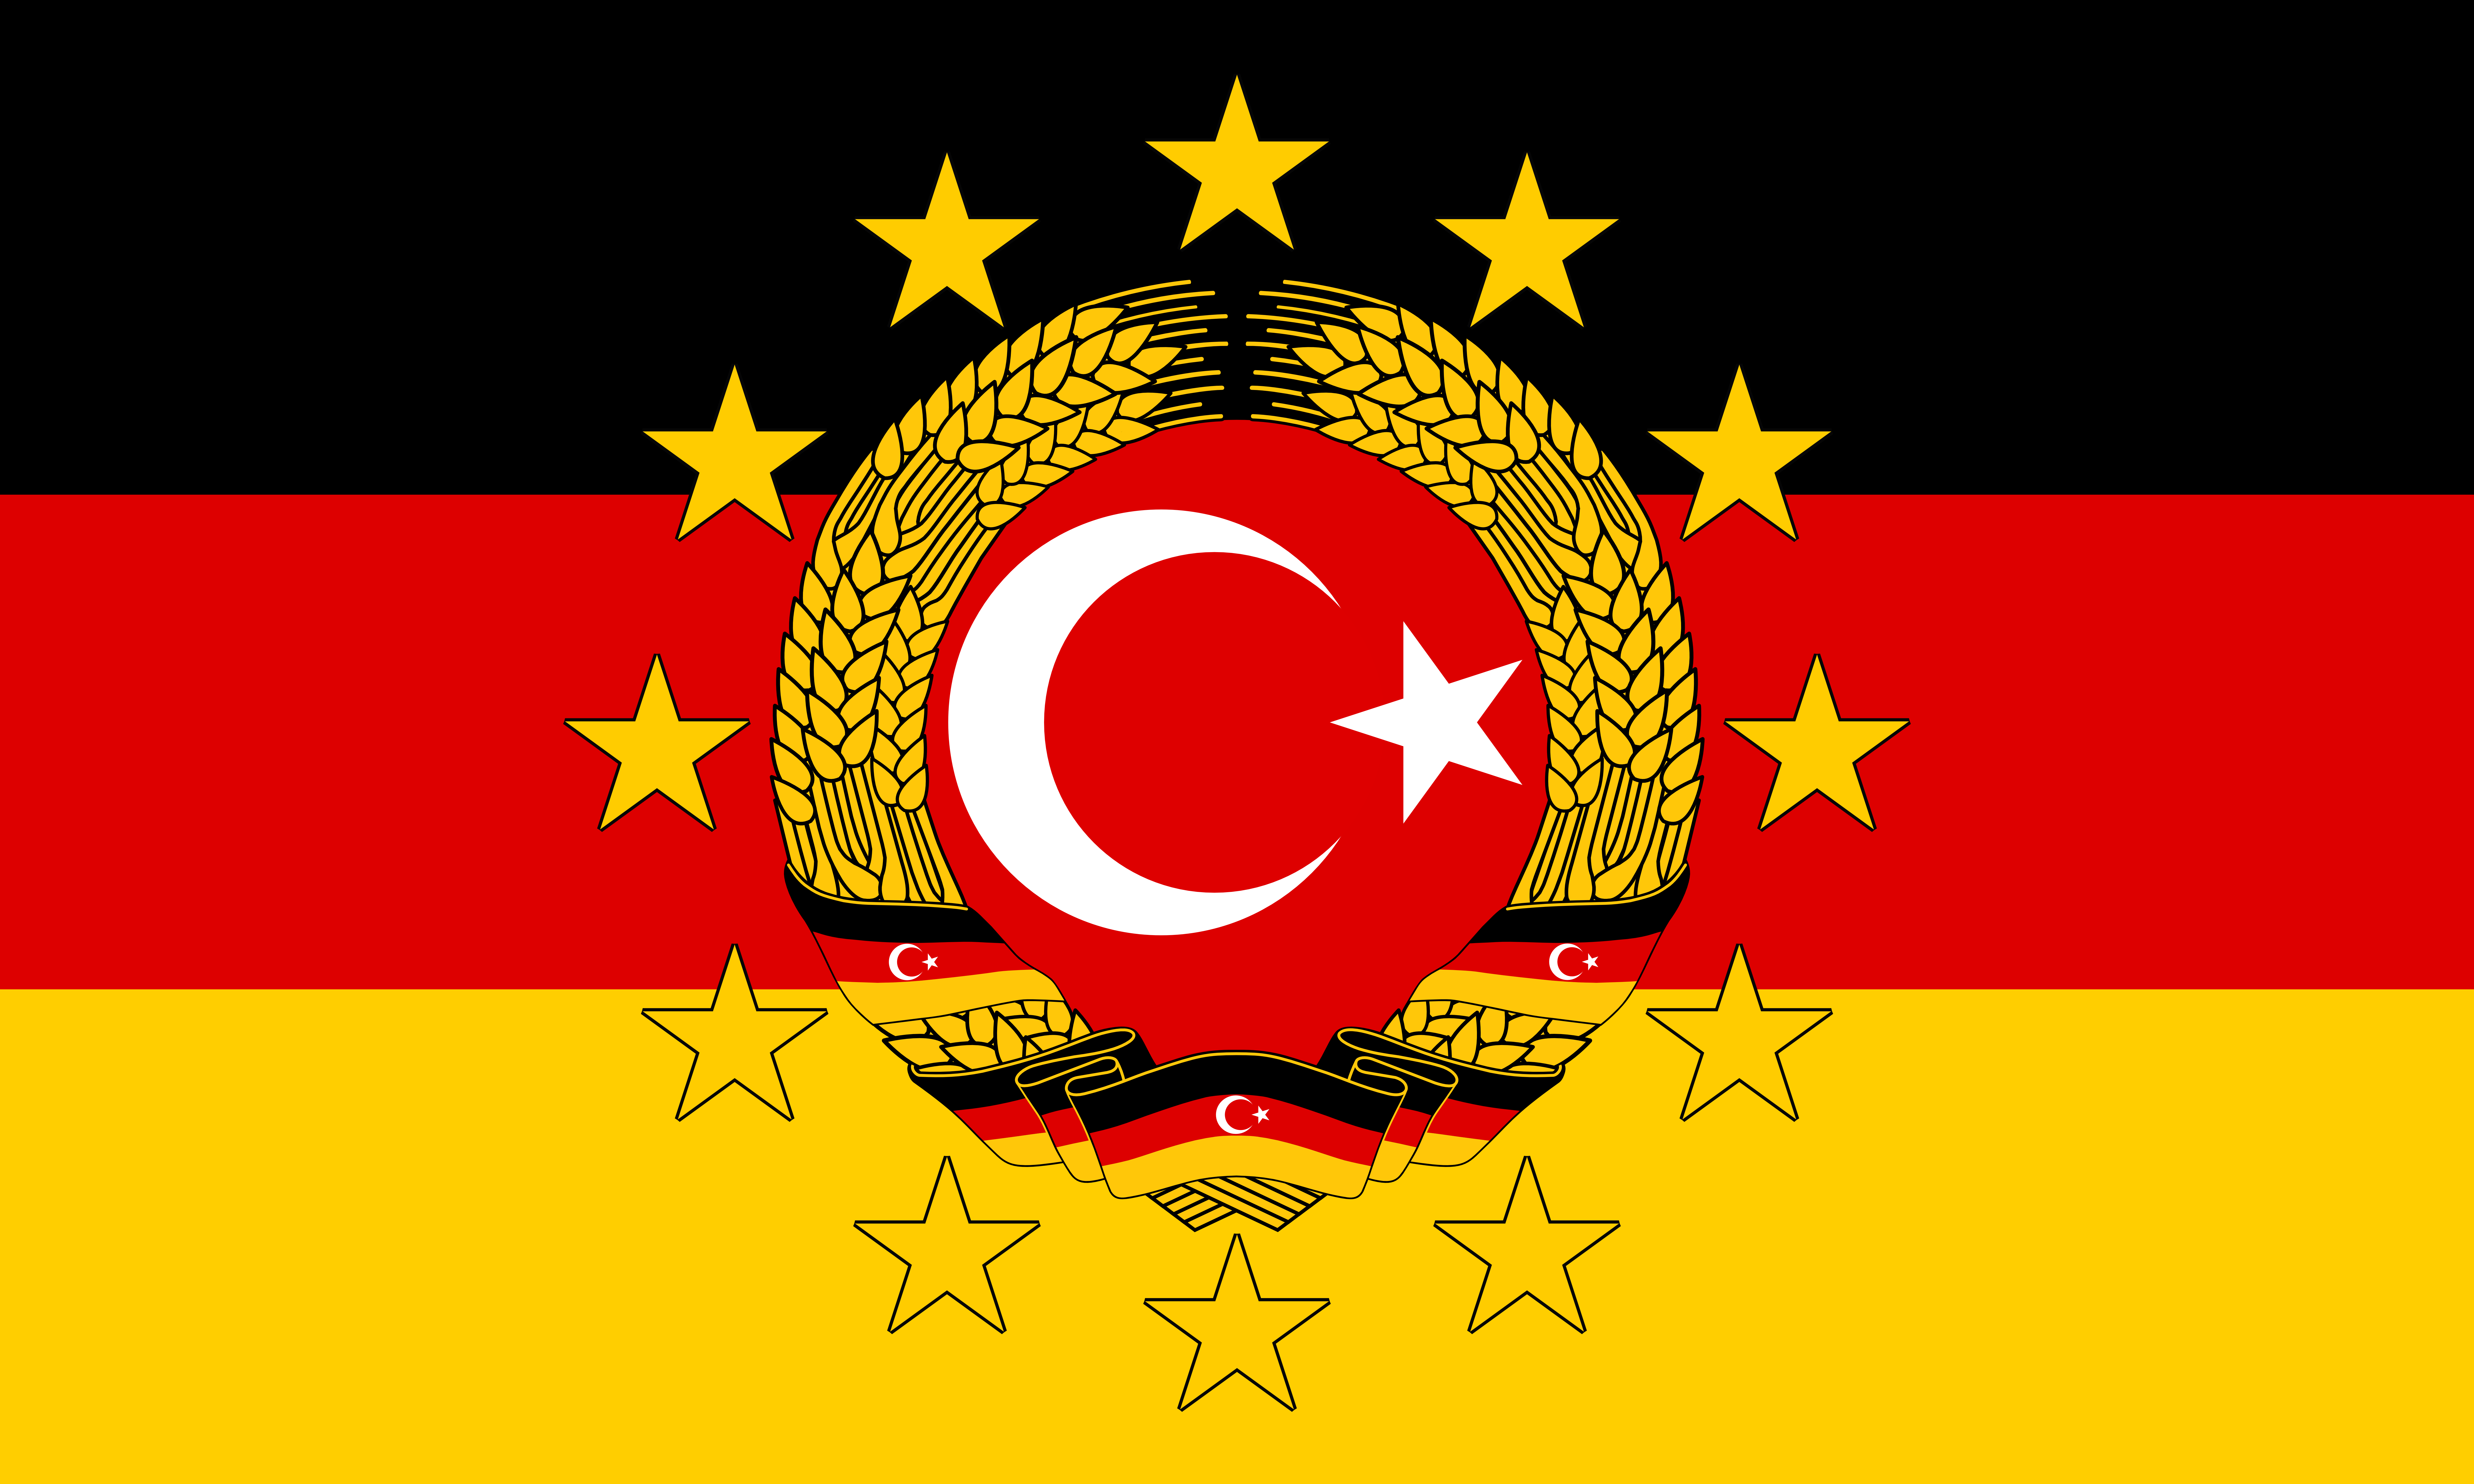 Flag Of Turkey 8k Ultra HD Wallpaper And Background Image